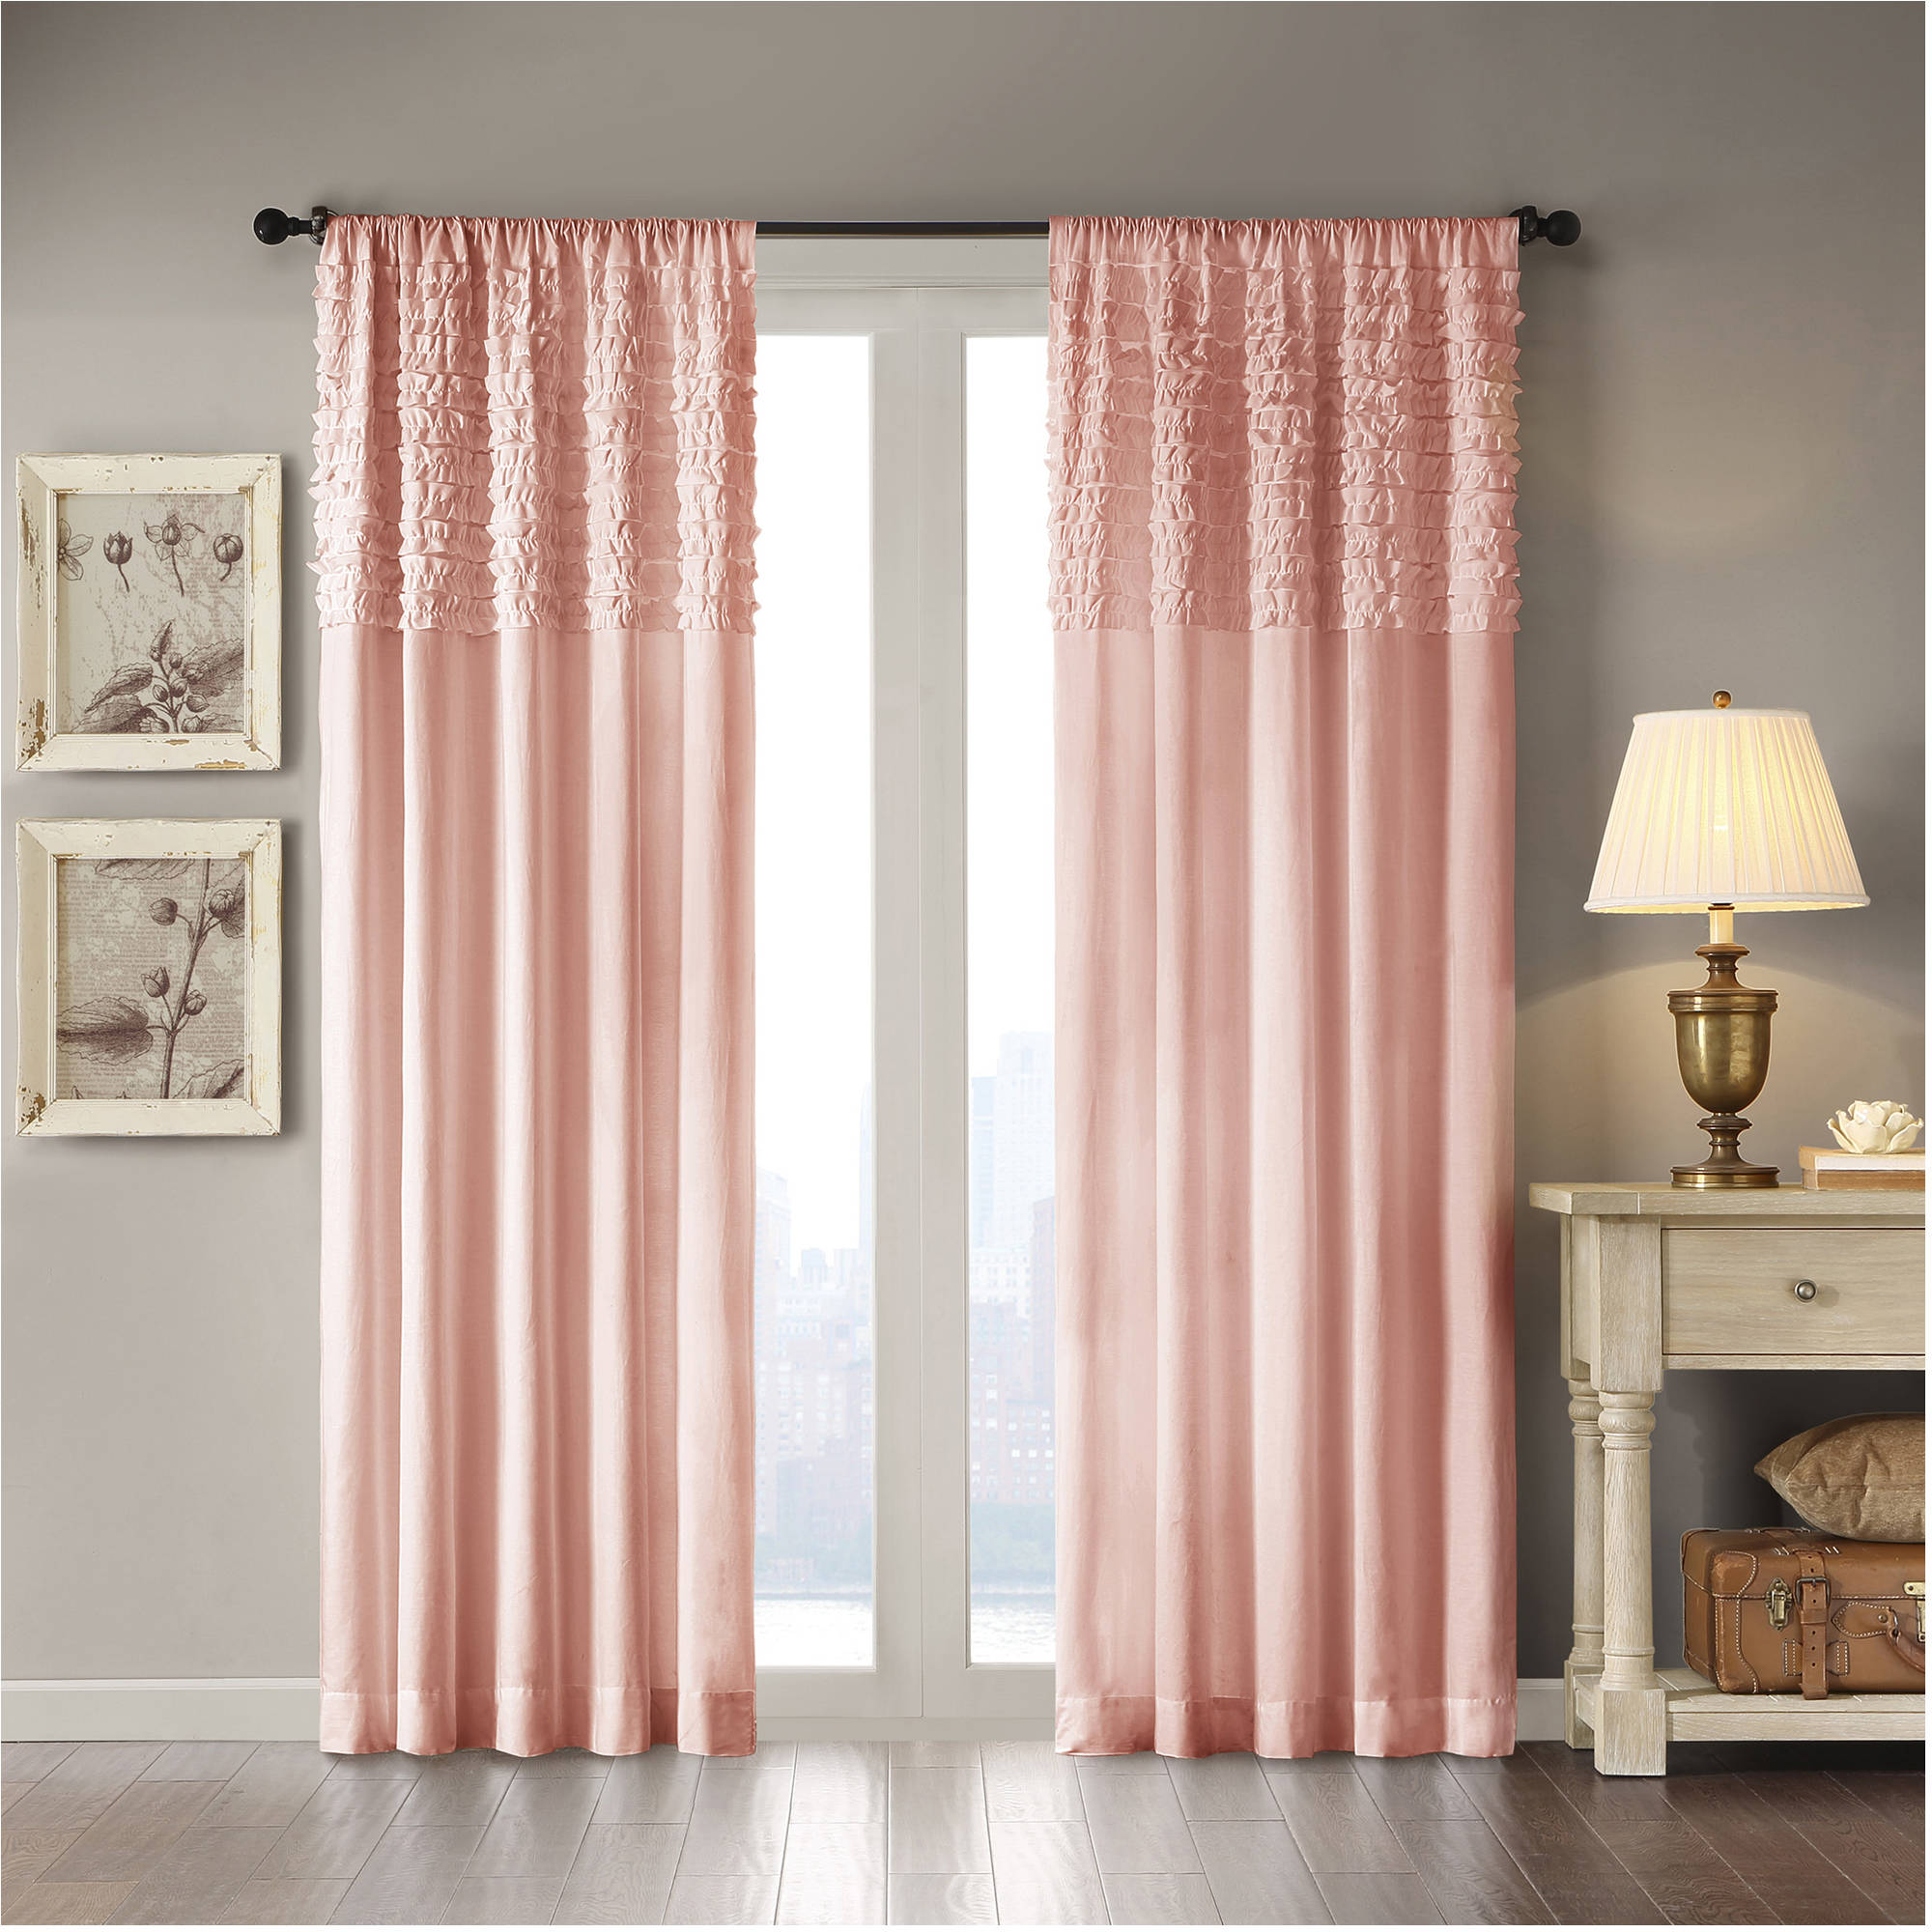 Ruffle Blackout Curtains | Coral Ruffle Curtains | White Ruffle Blackout Curtains